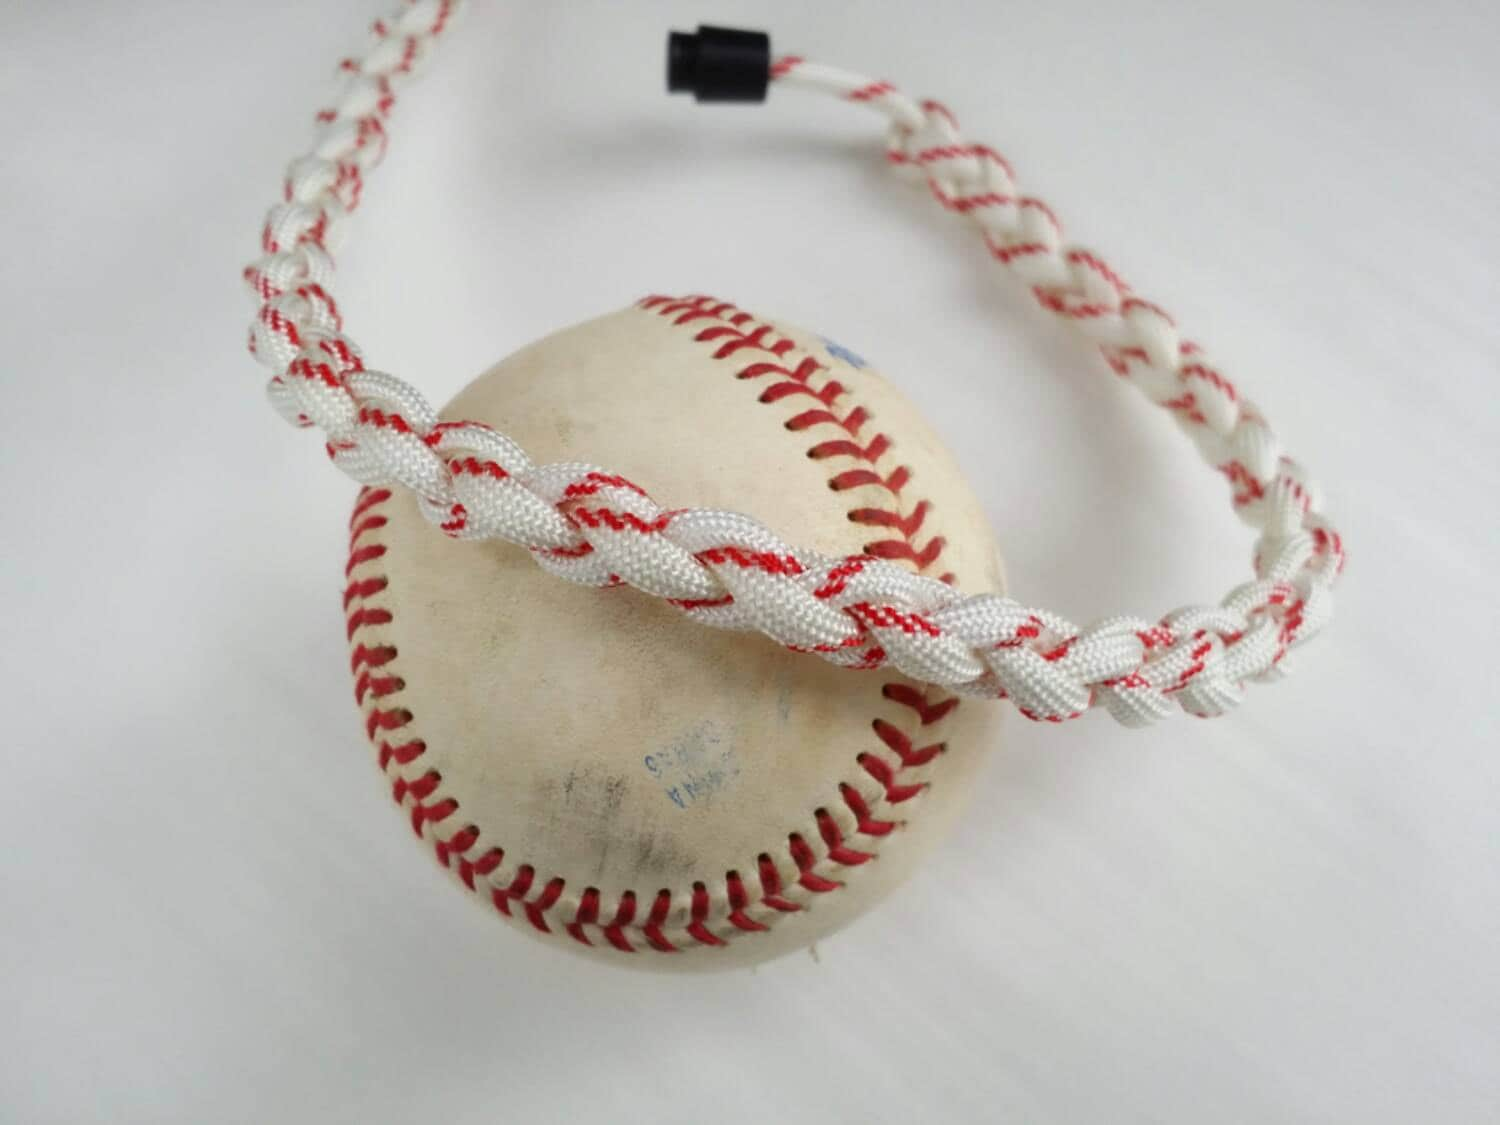 from sporty i buy jewelry gifts this w get for softball heart gift bc chicas necklace